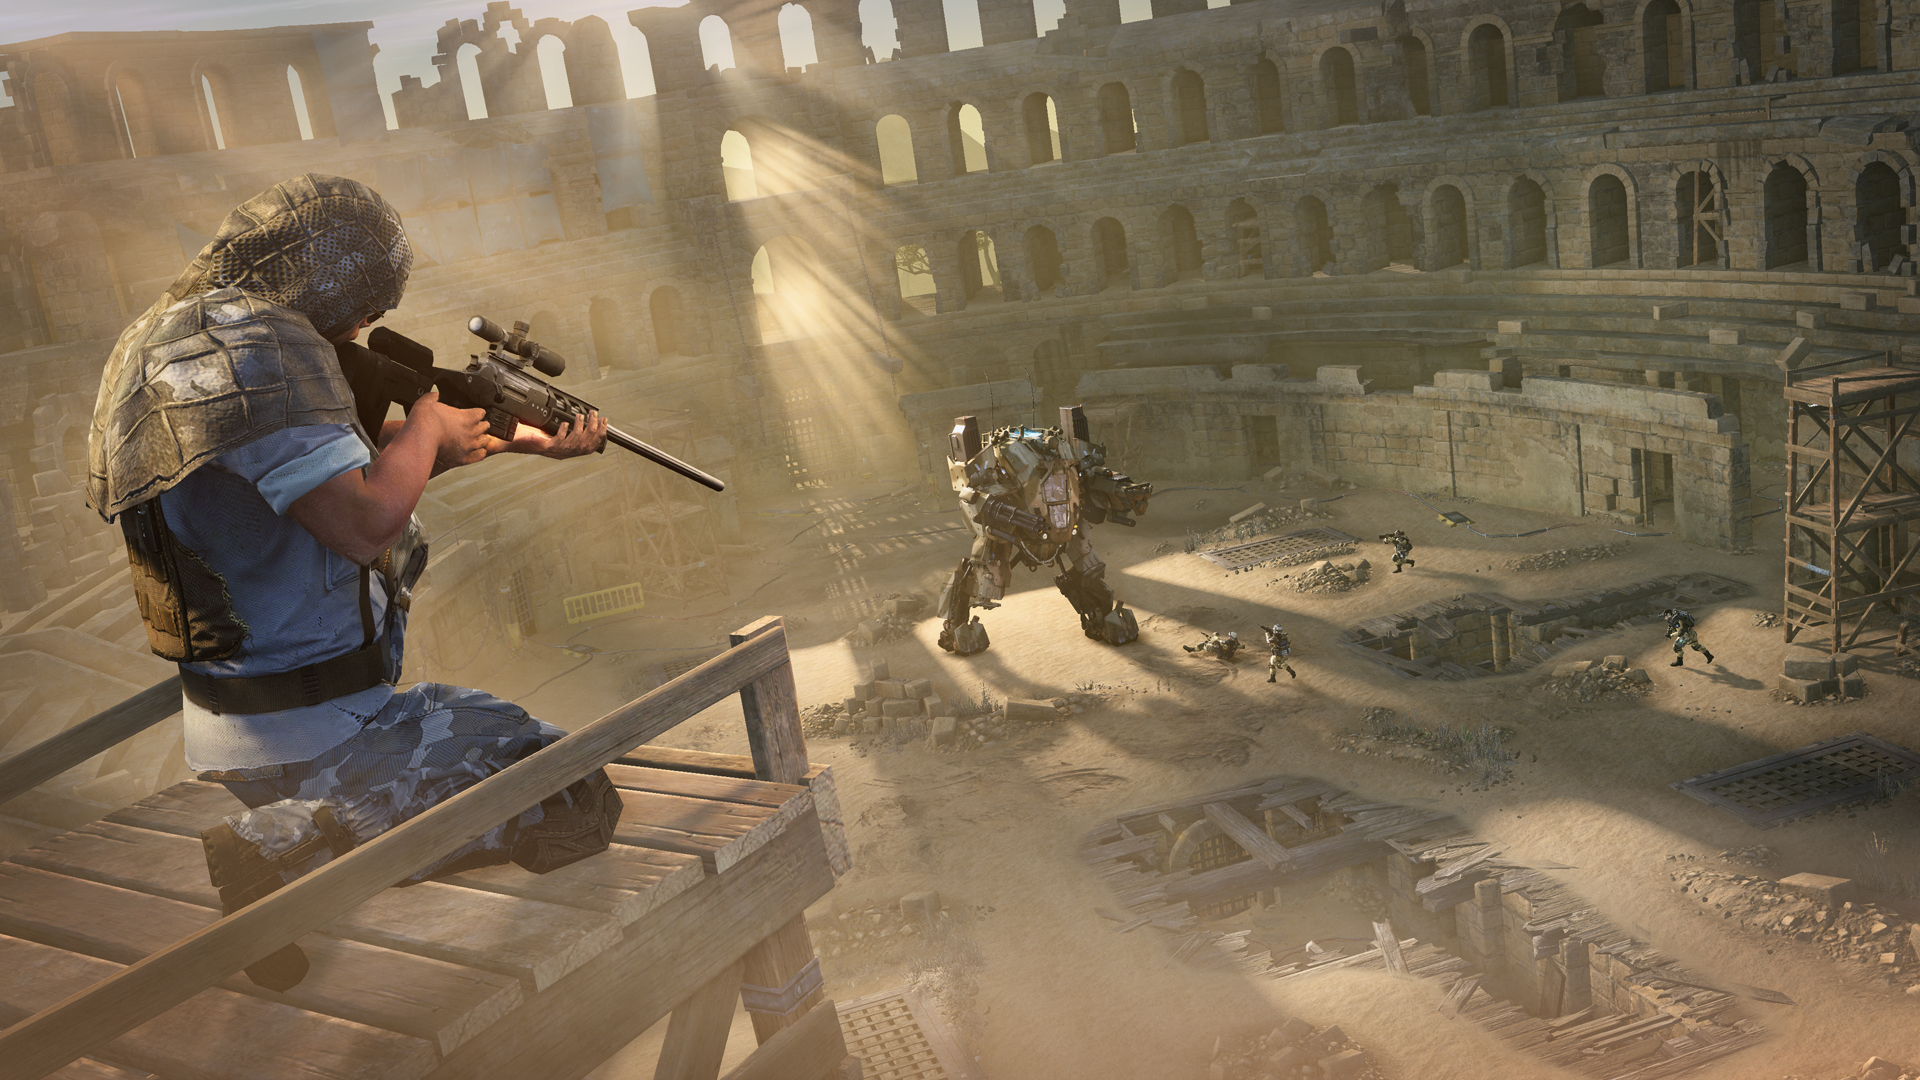 WF_Coliseum_Action_01.jpg - Warface